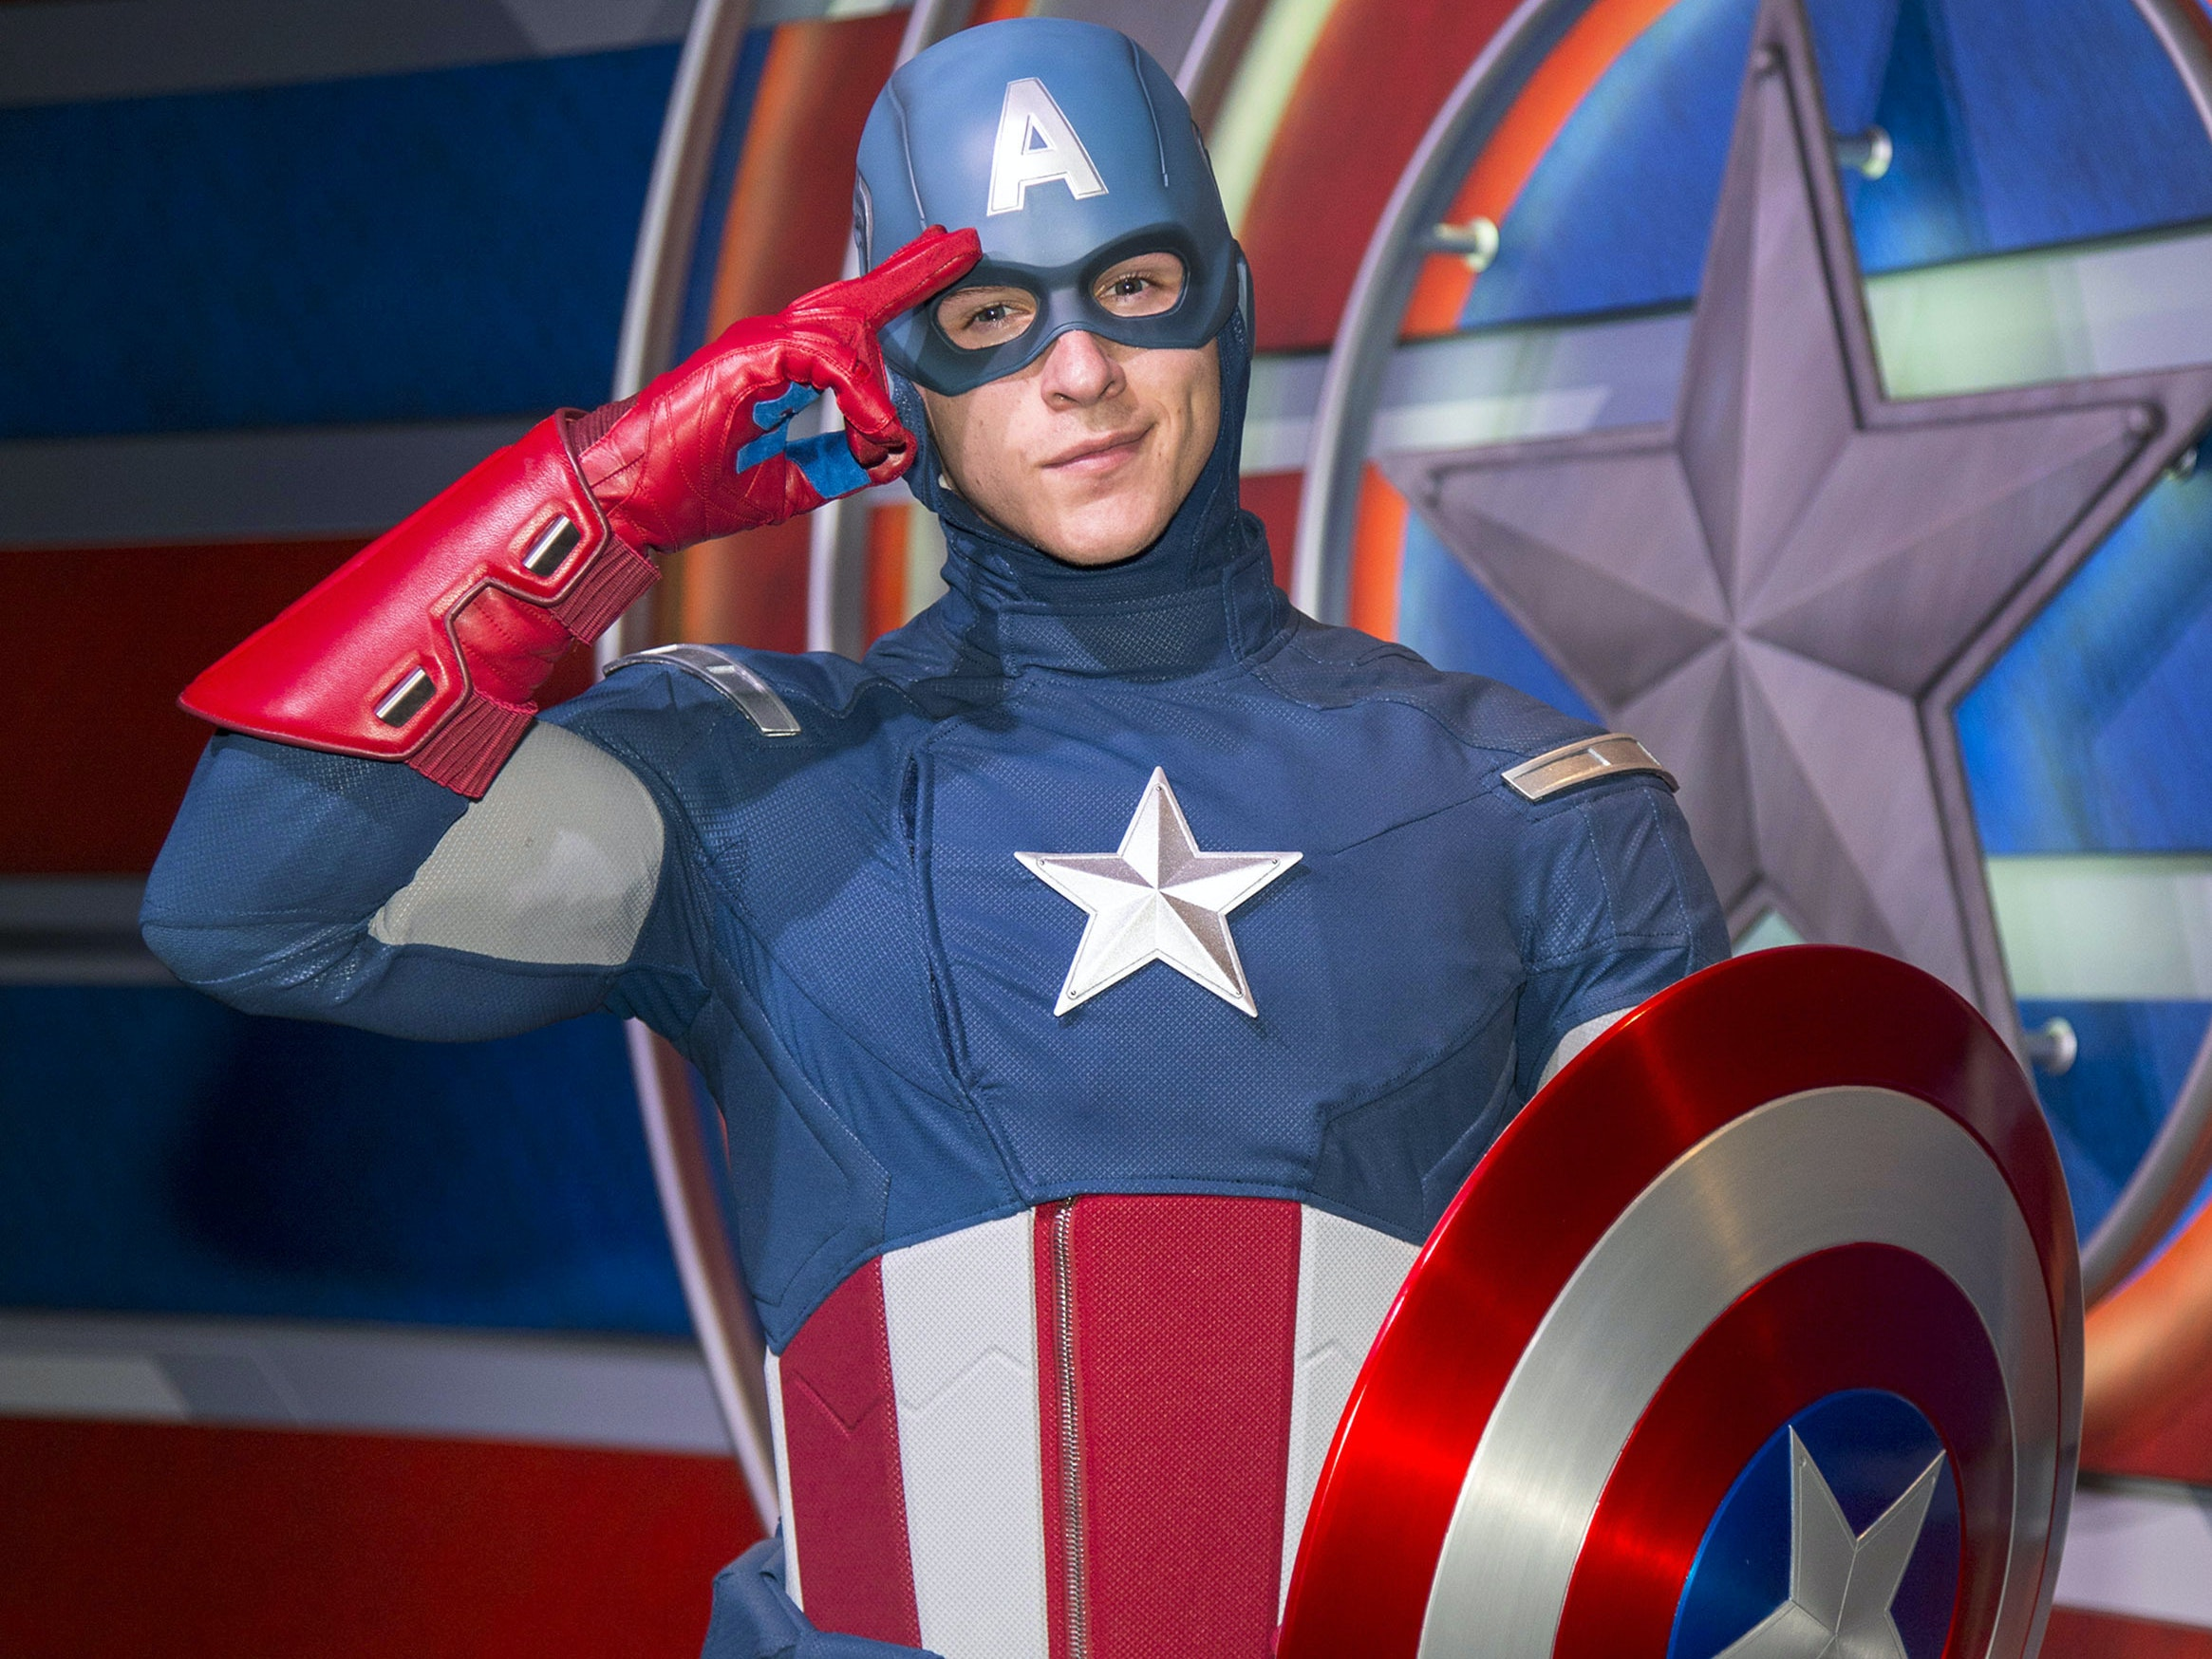 The 10 Most Exciting Marvel Disneyland Attractions